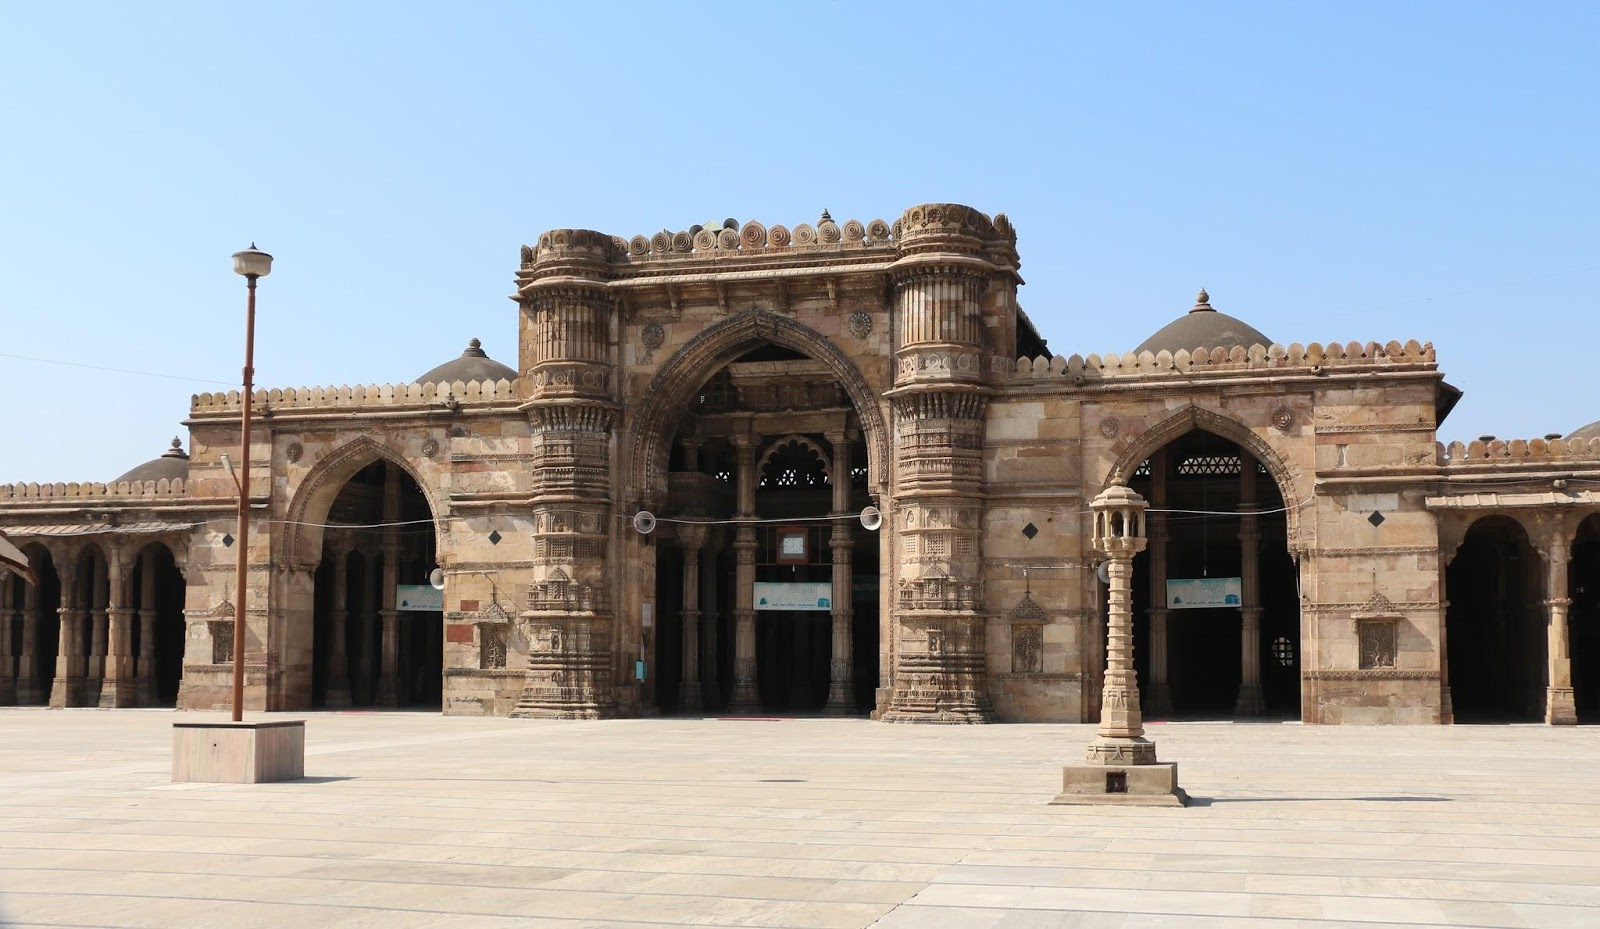 Ahmedabad, itself, has multiple historical wonders, such as the Jama Masjid built in yellow sandstone, which is as magnificent as the Jama Masjid in New Delhi. (Image:BgagviawikimediaCC BY-SA 3.0)